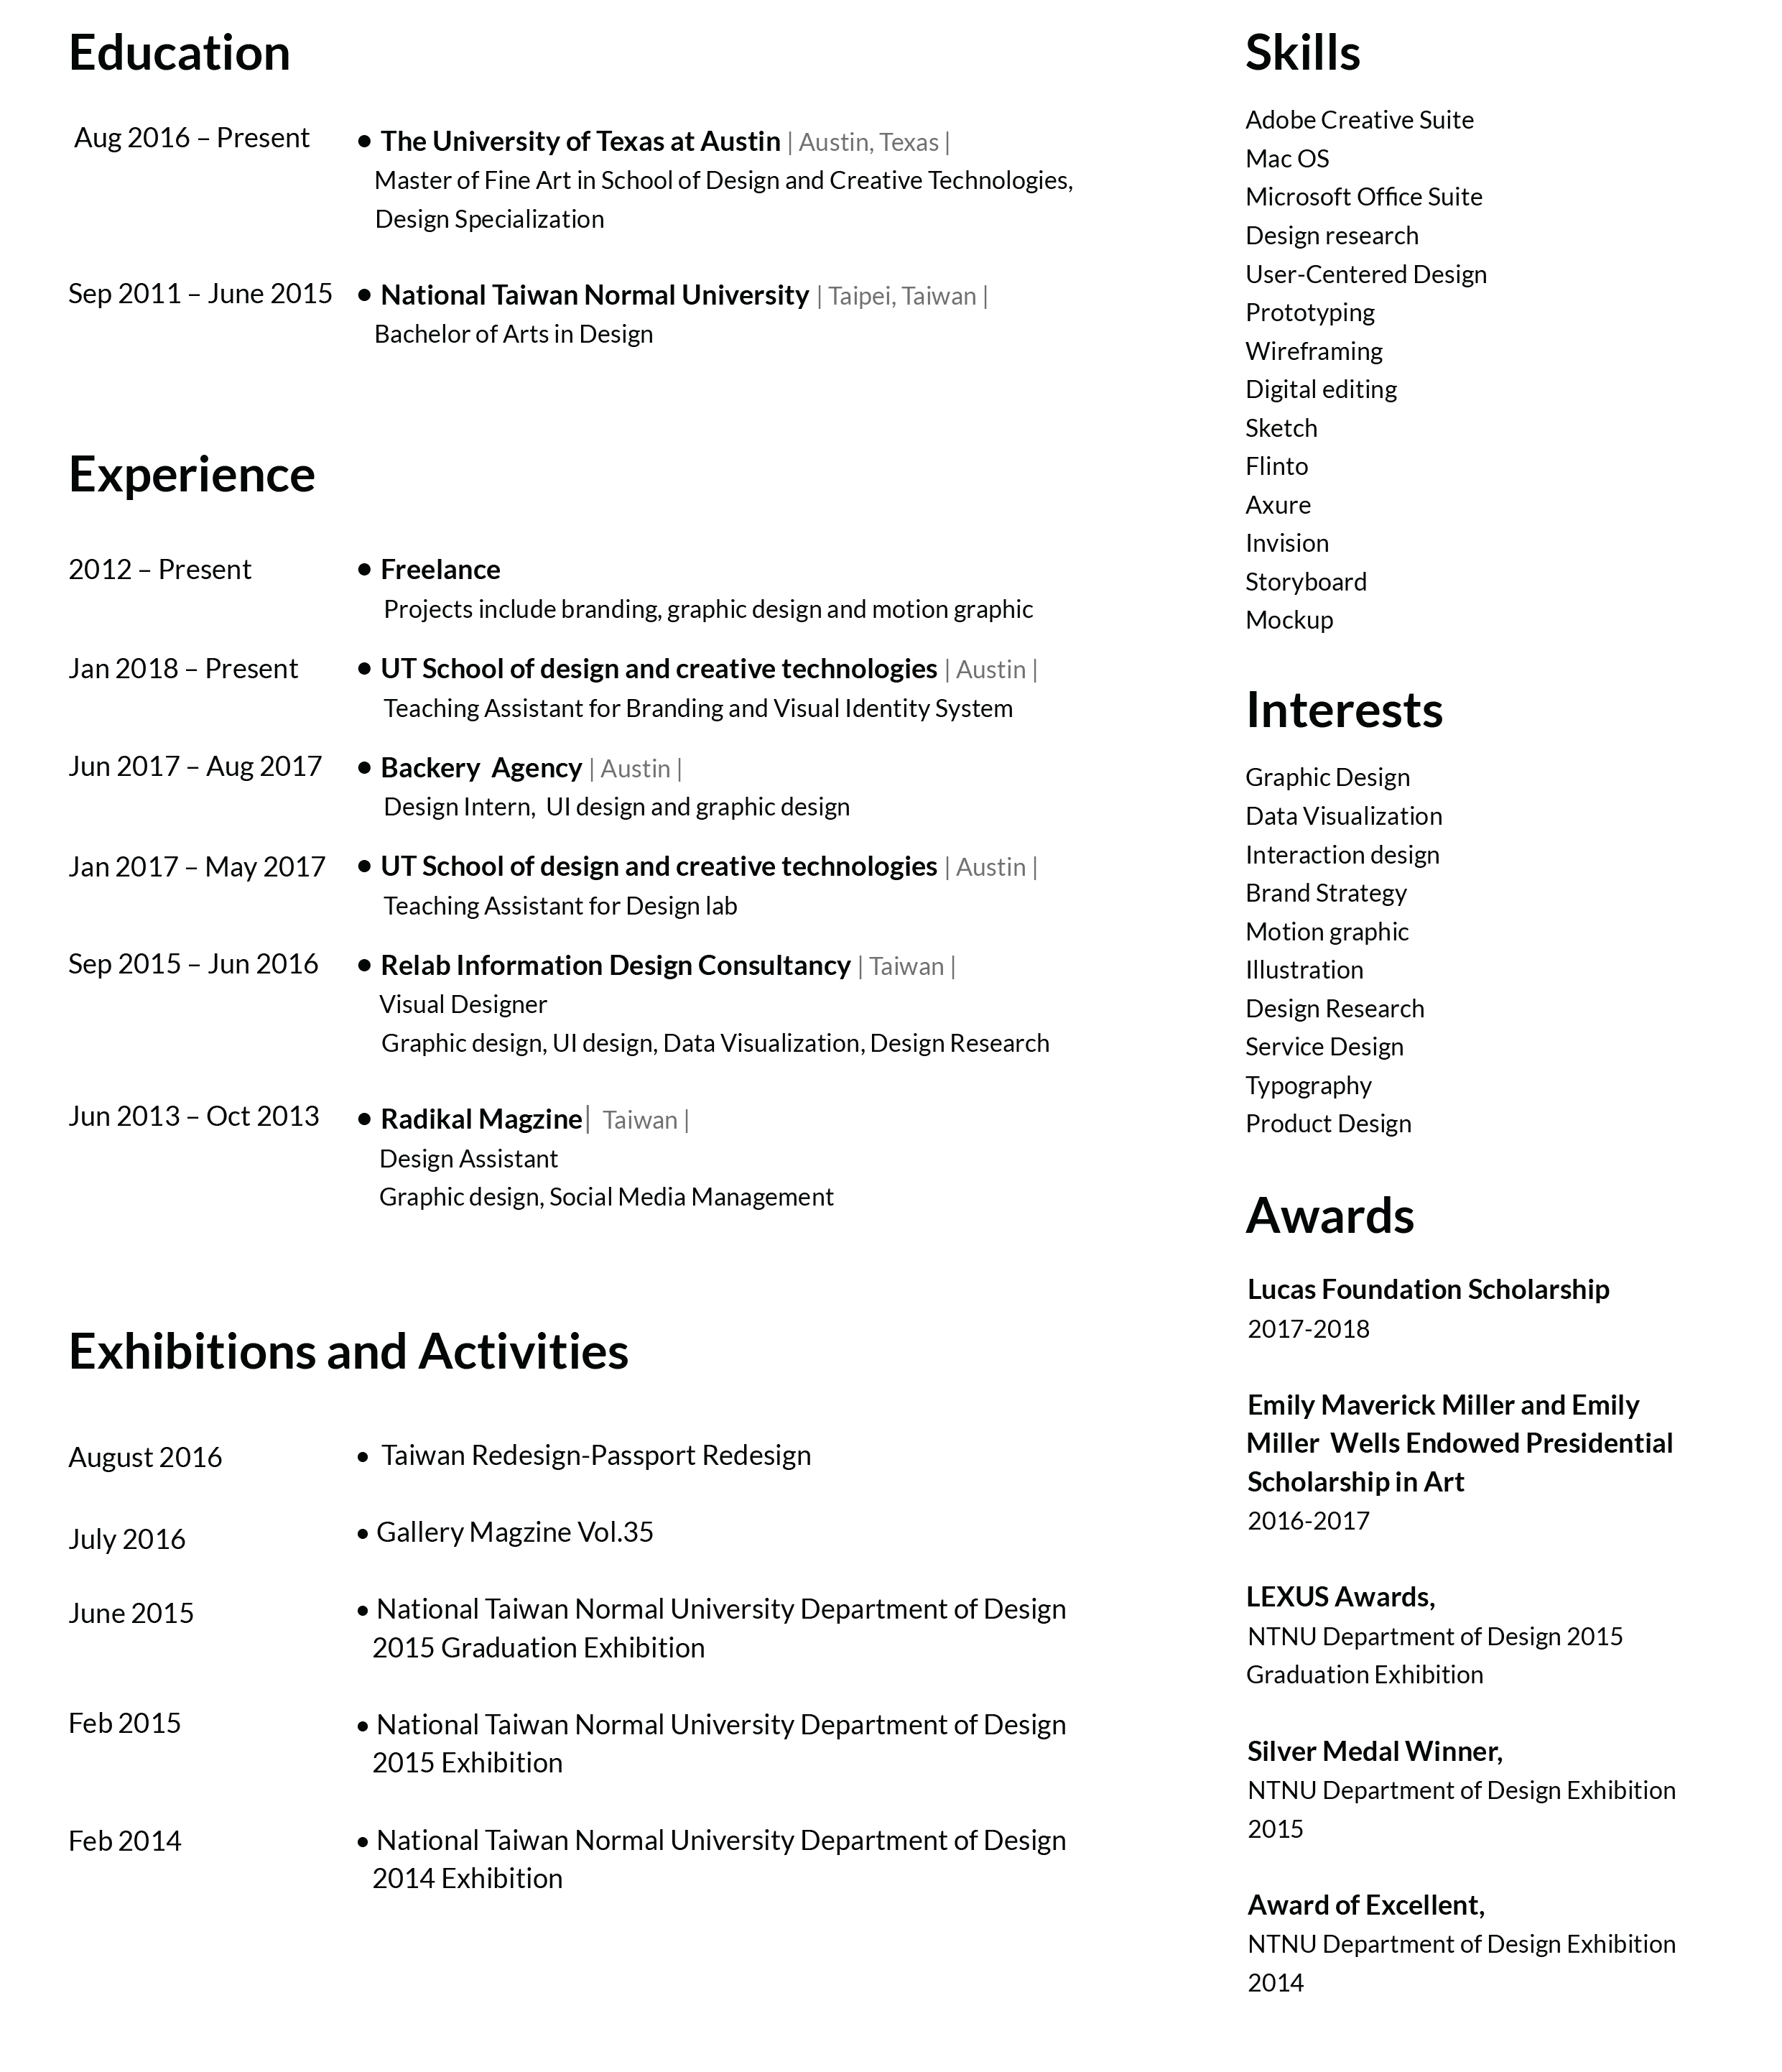 resume-01.png